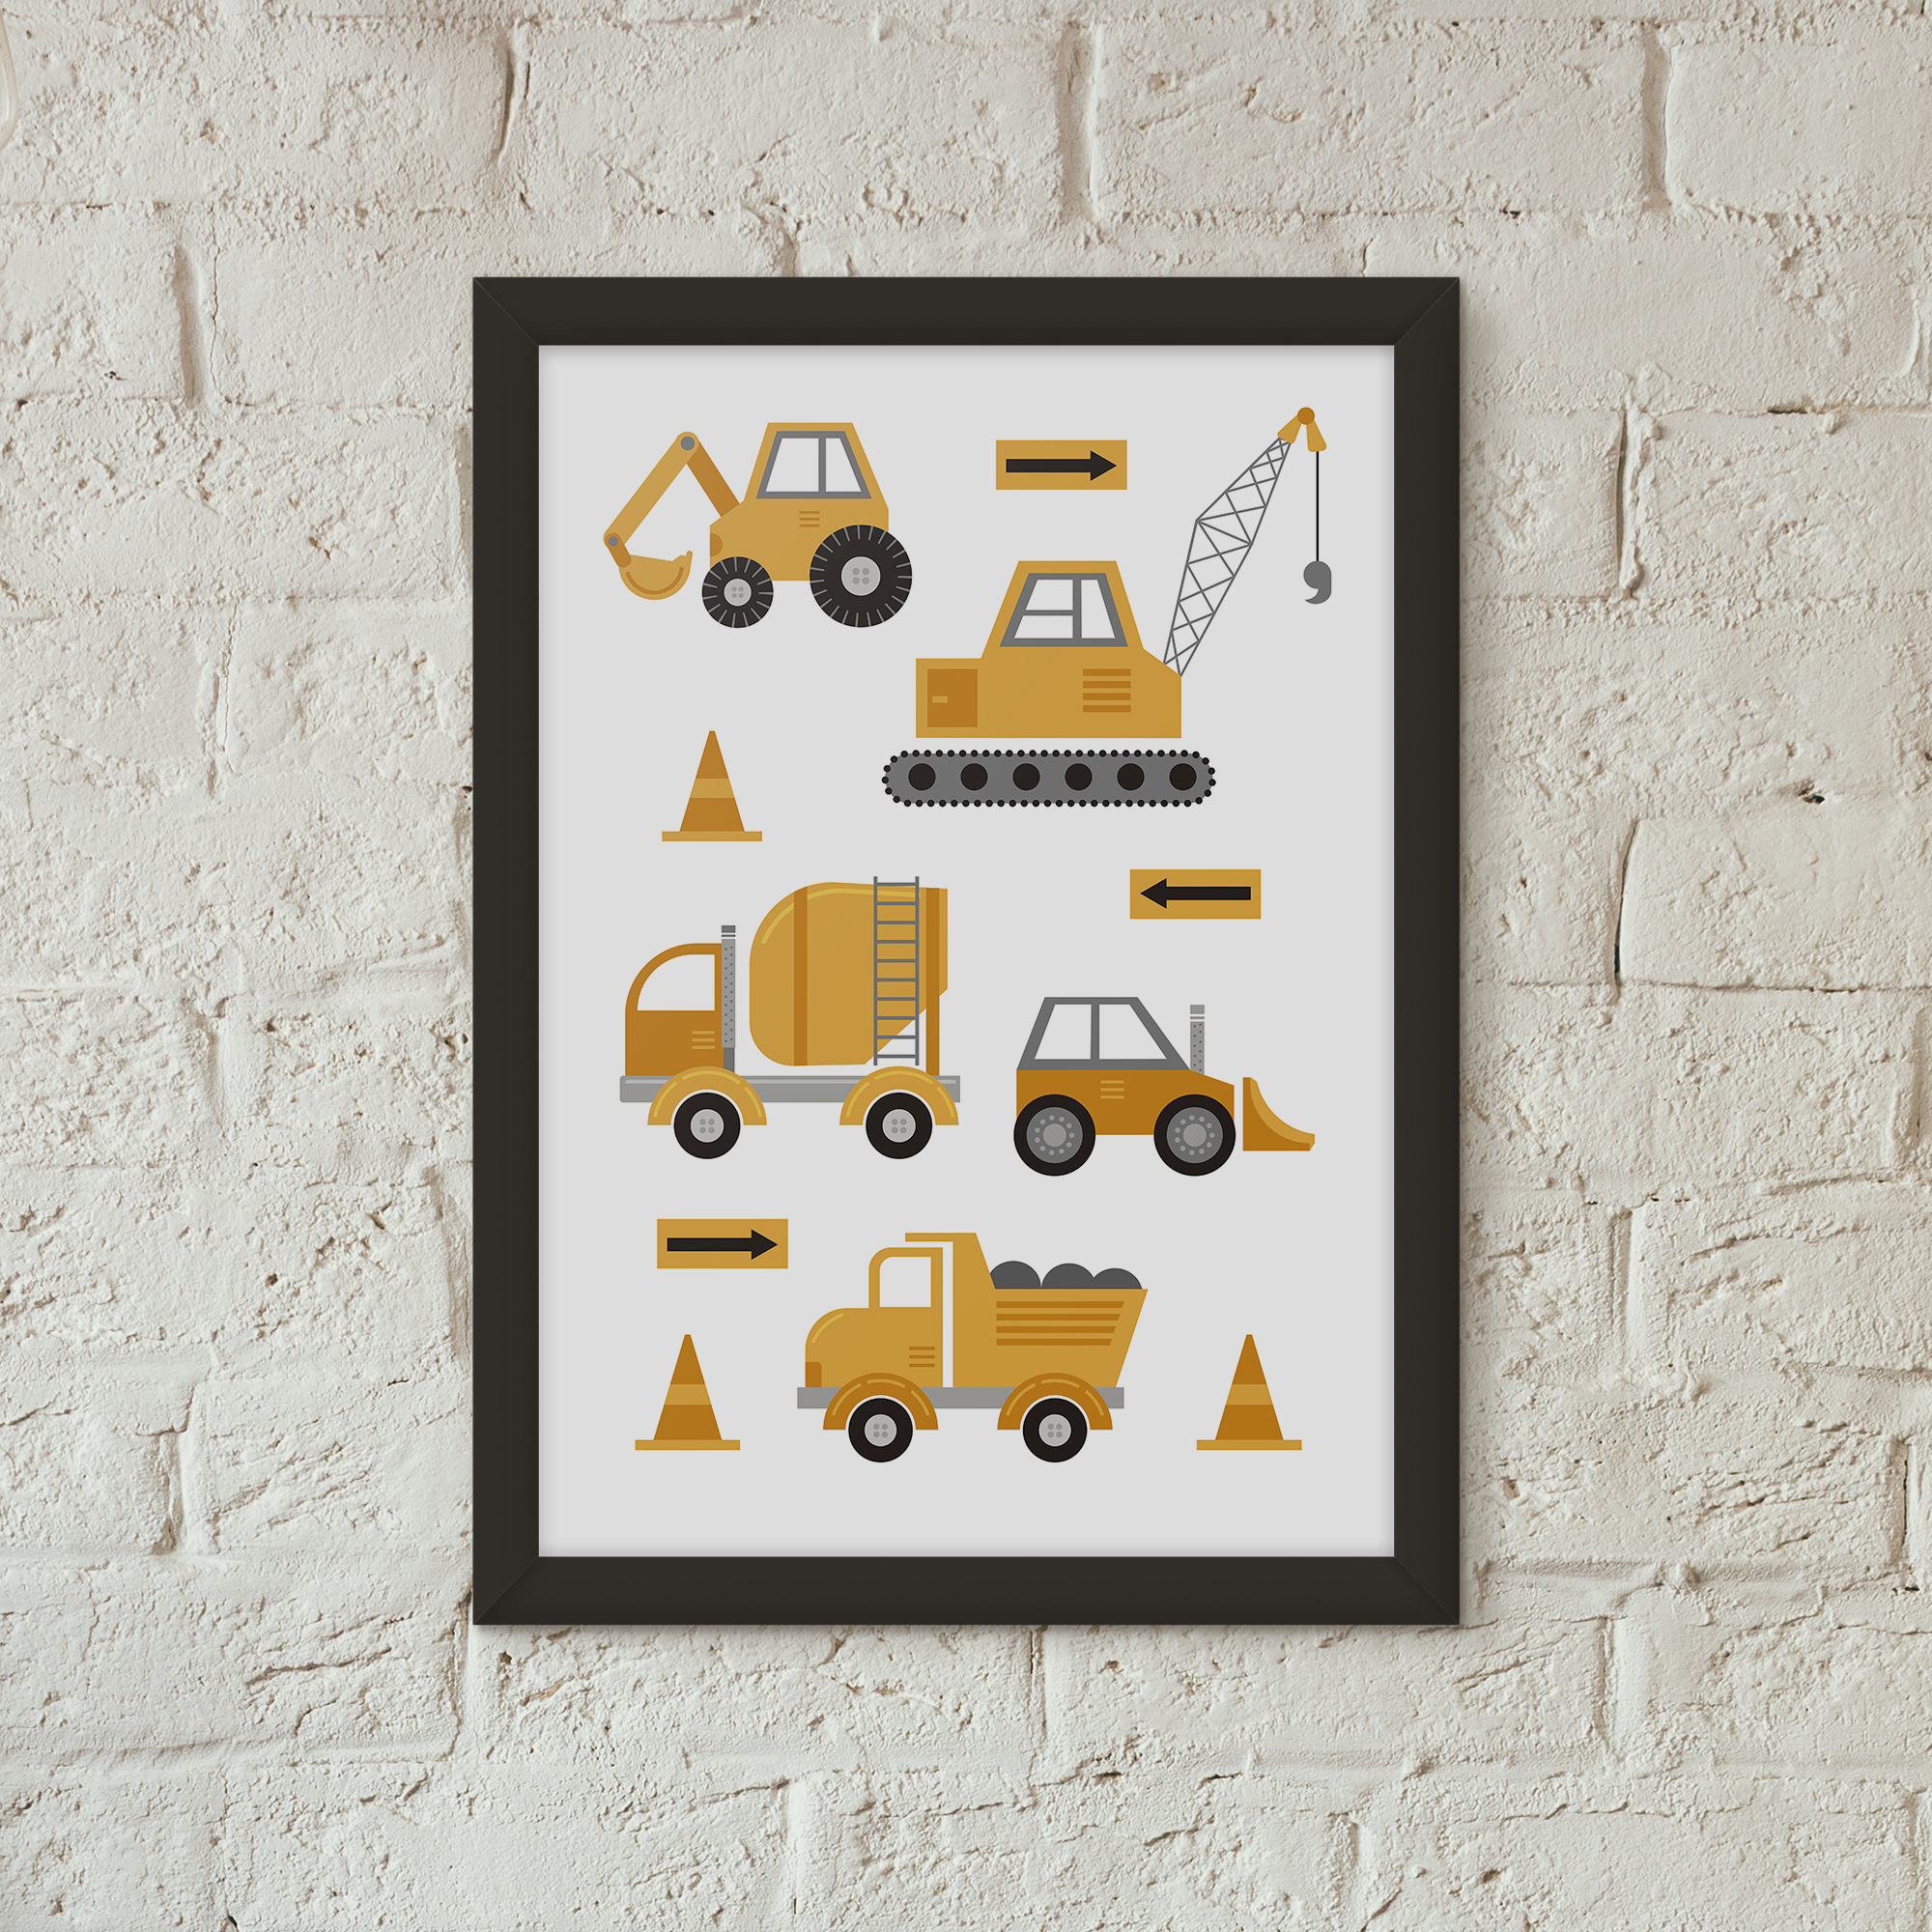 Poster of construction trucks perfect for your child that loves all things construction and tool related in yellow